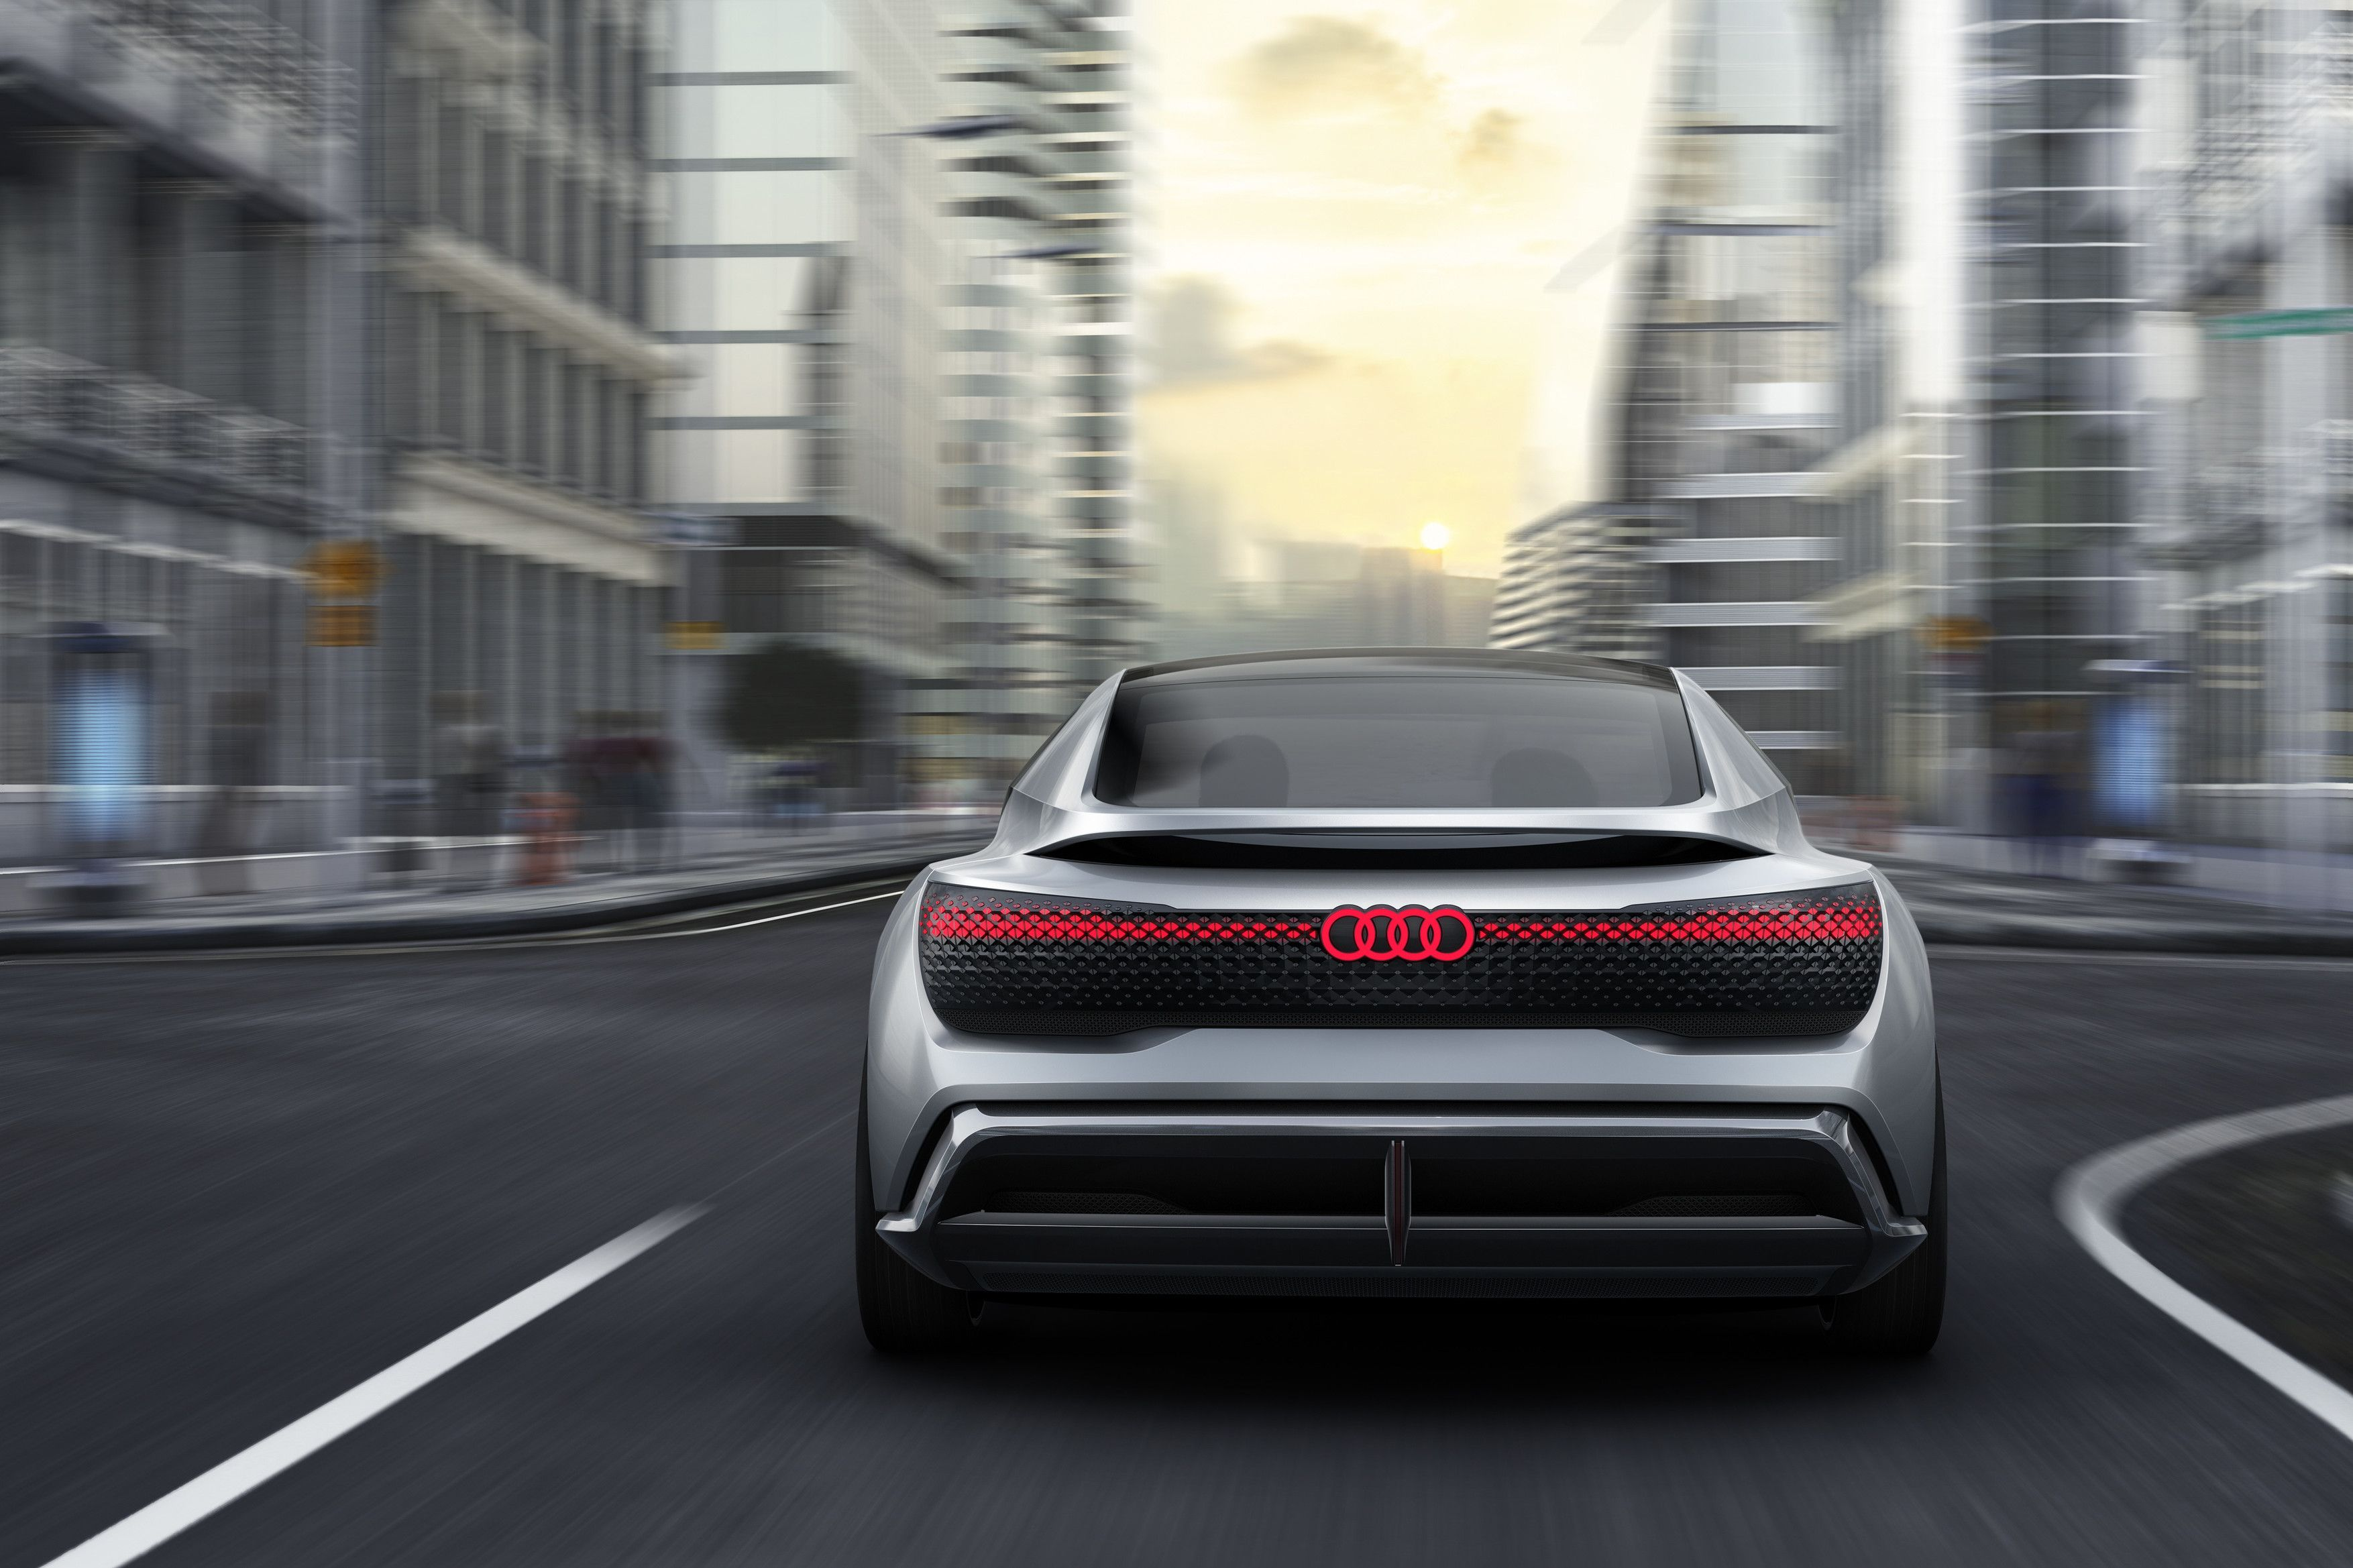 Audi fleshes out its corporate strategy and plans to sell 800,00